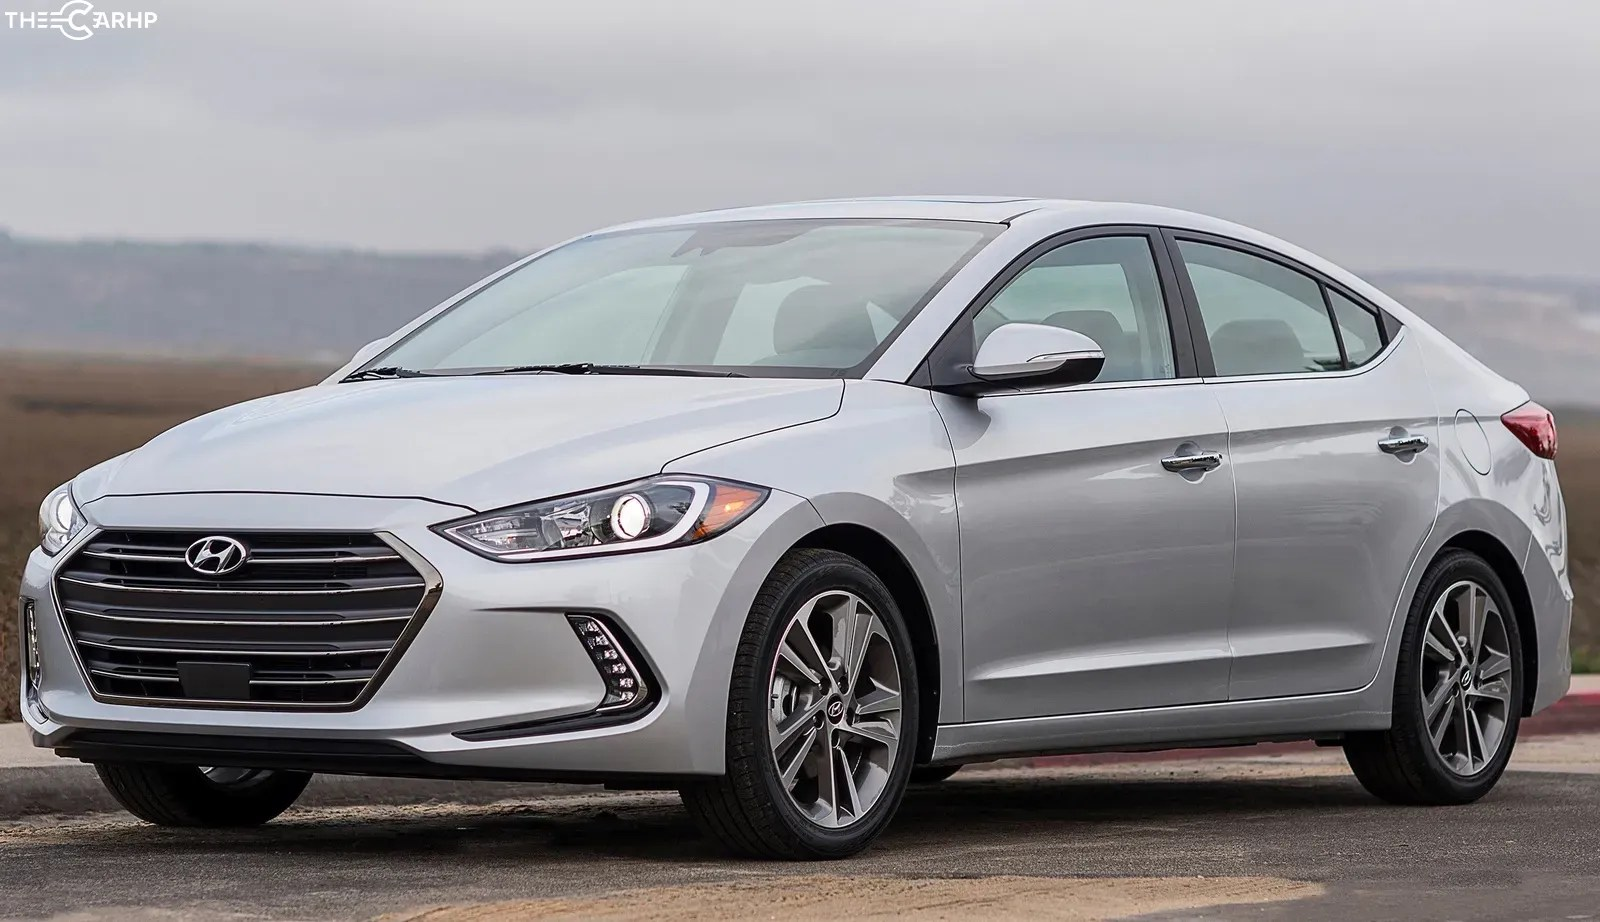 Hyundai has been upping its motorsports game rather dram. 2018 Hyundai Elantra Review Trims Features Prices Performance Mpg Figures And Rivals